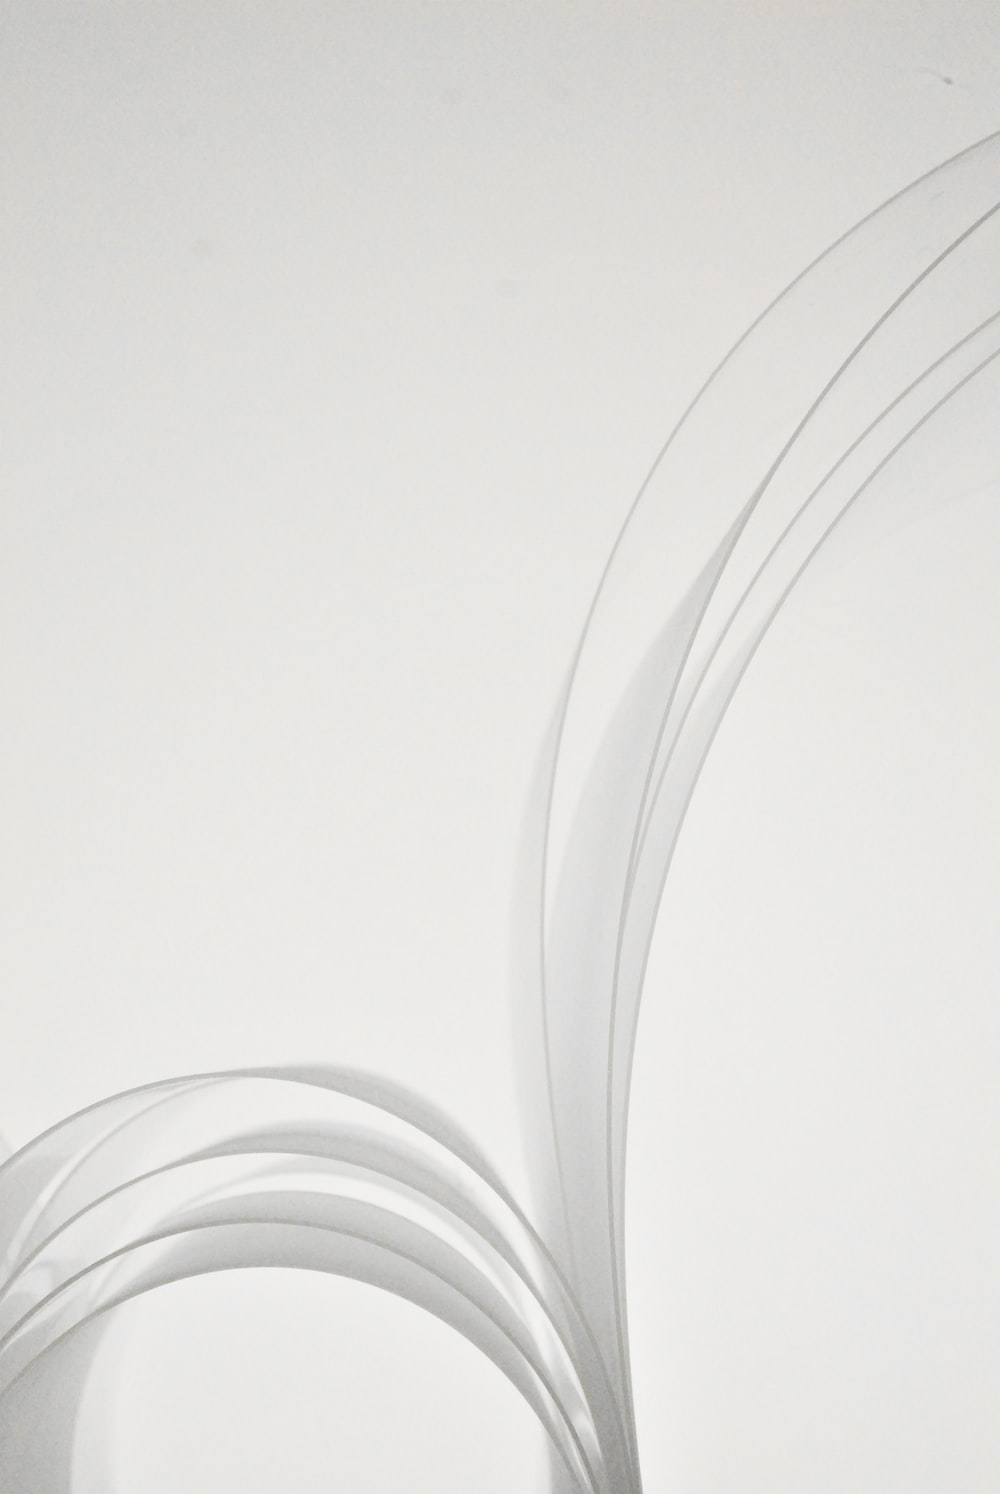 white and gray spiral light